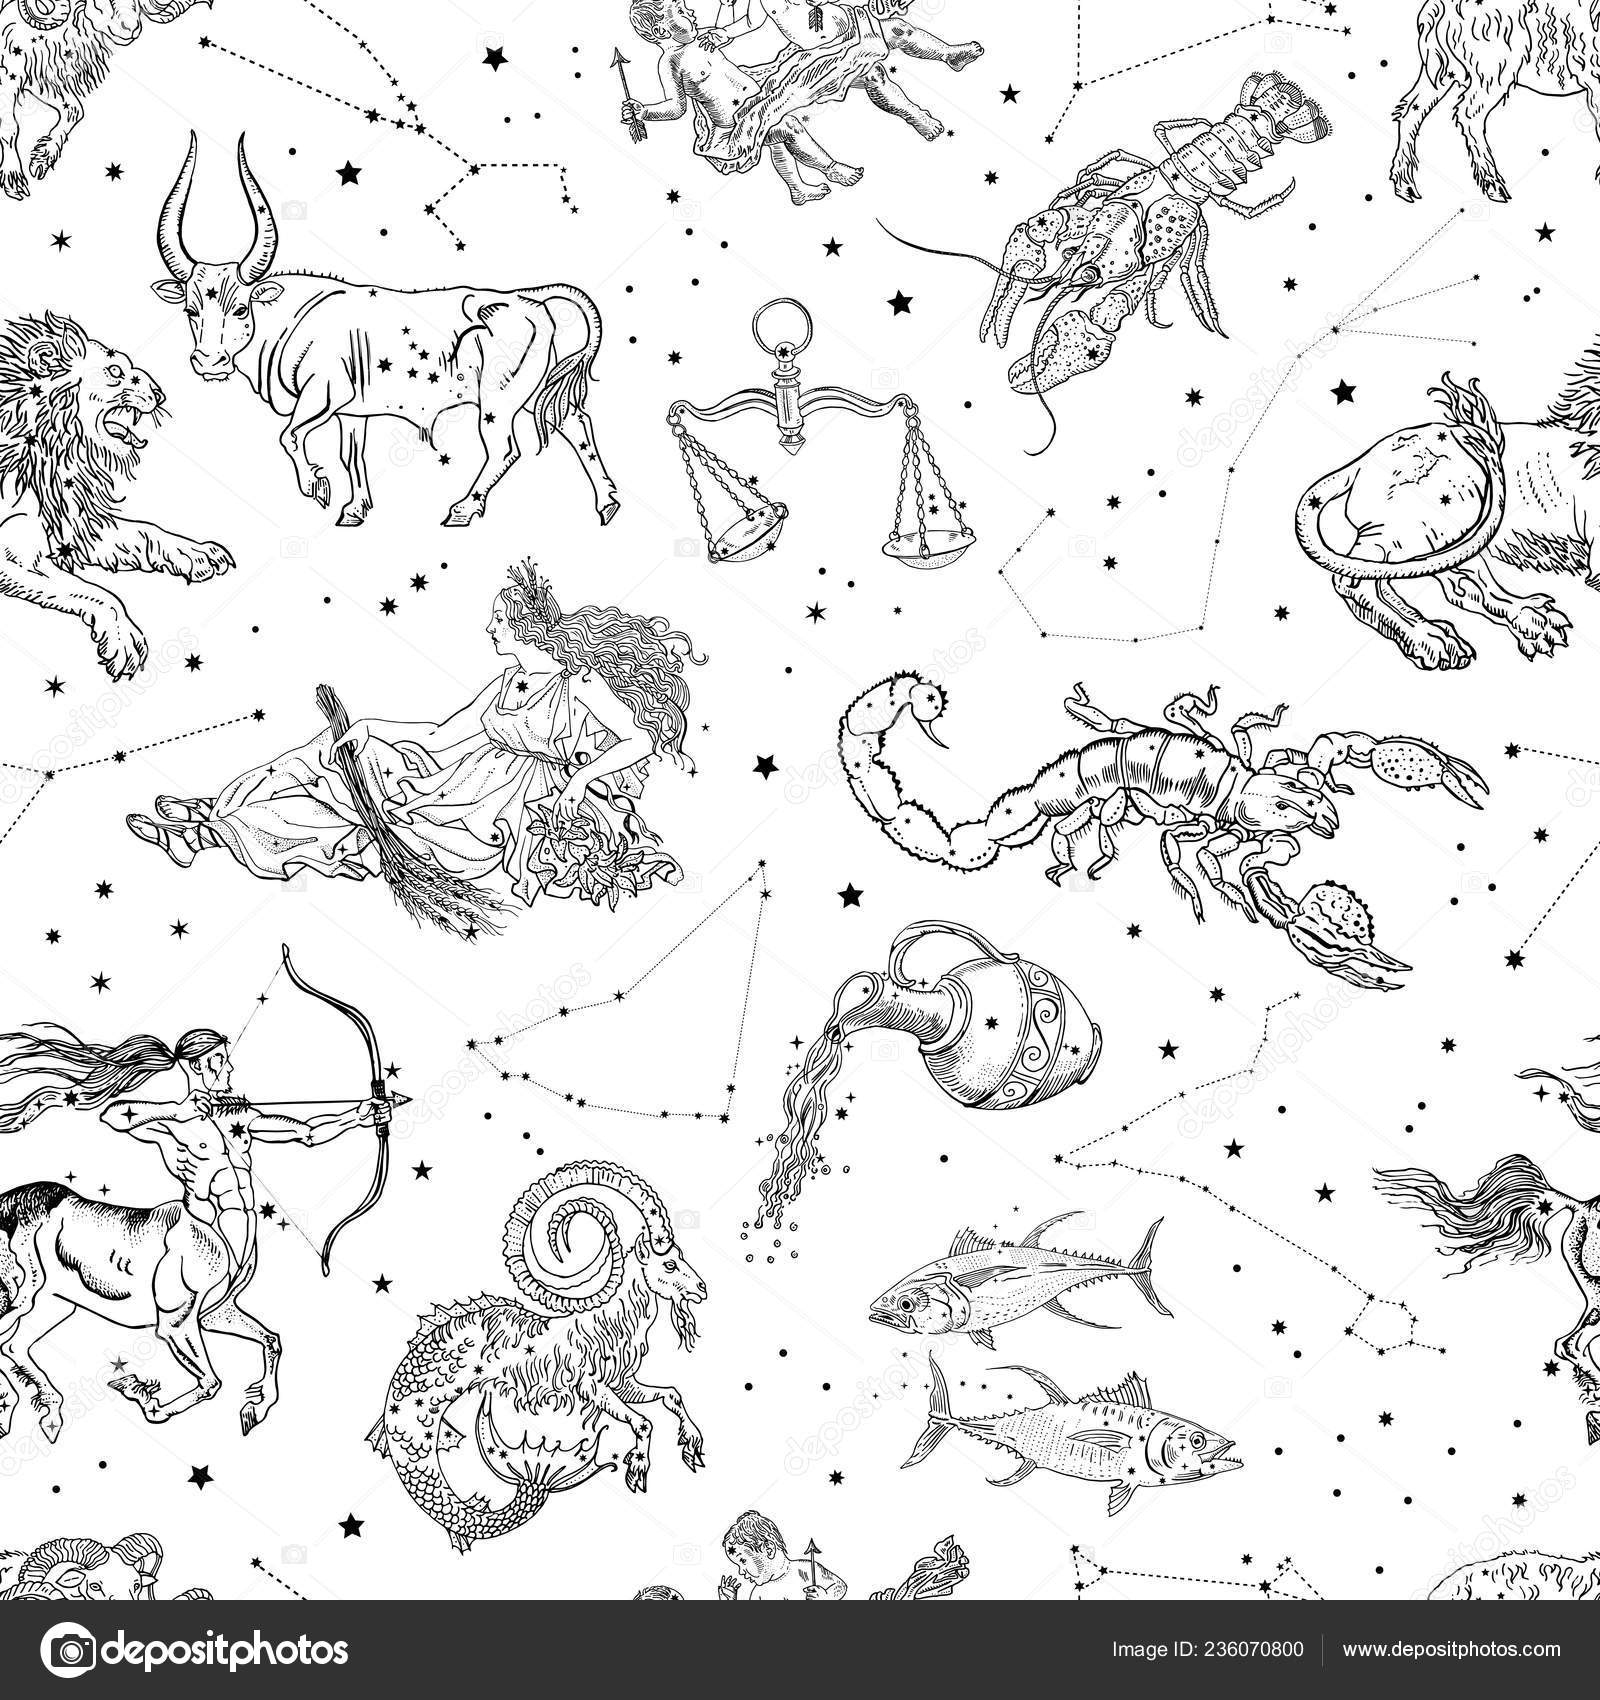 depositphotos_236070800-stock-illustration-zodiac-signs-and-constellations-seamless.jpg